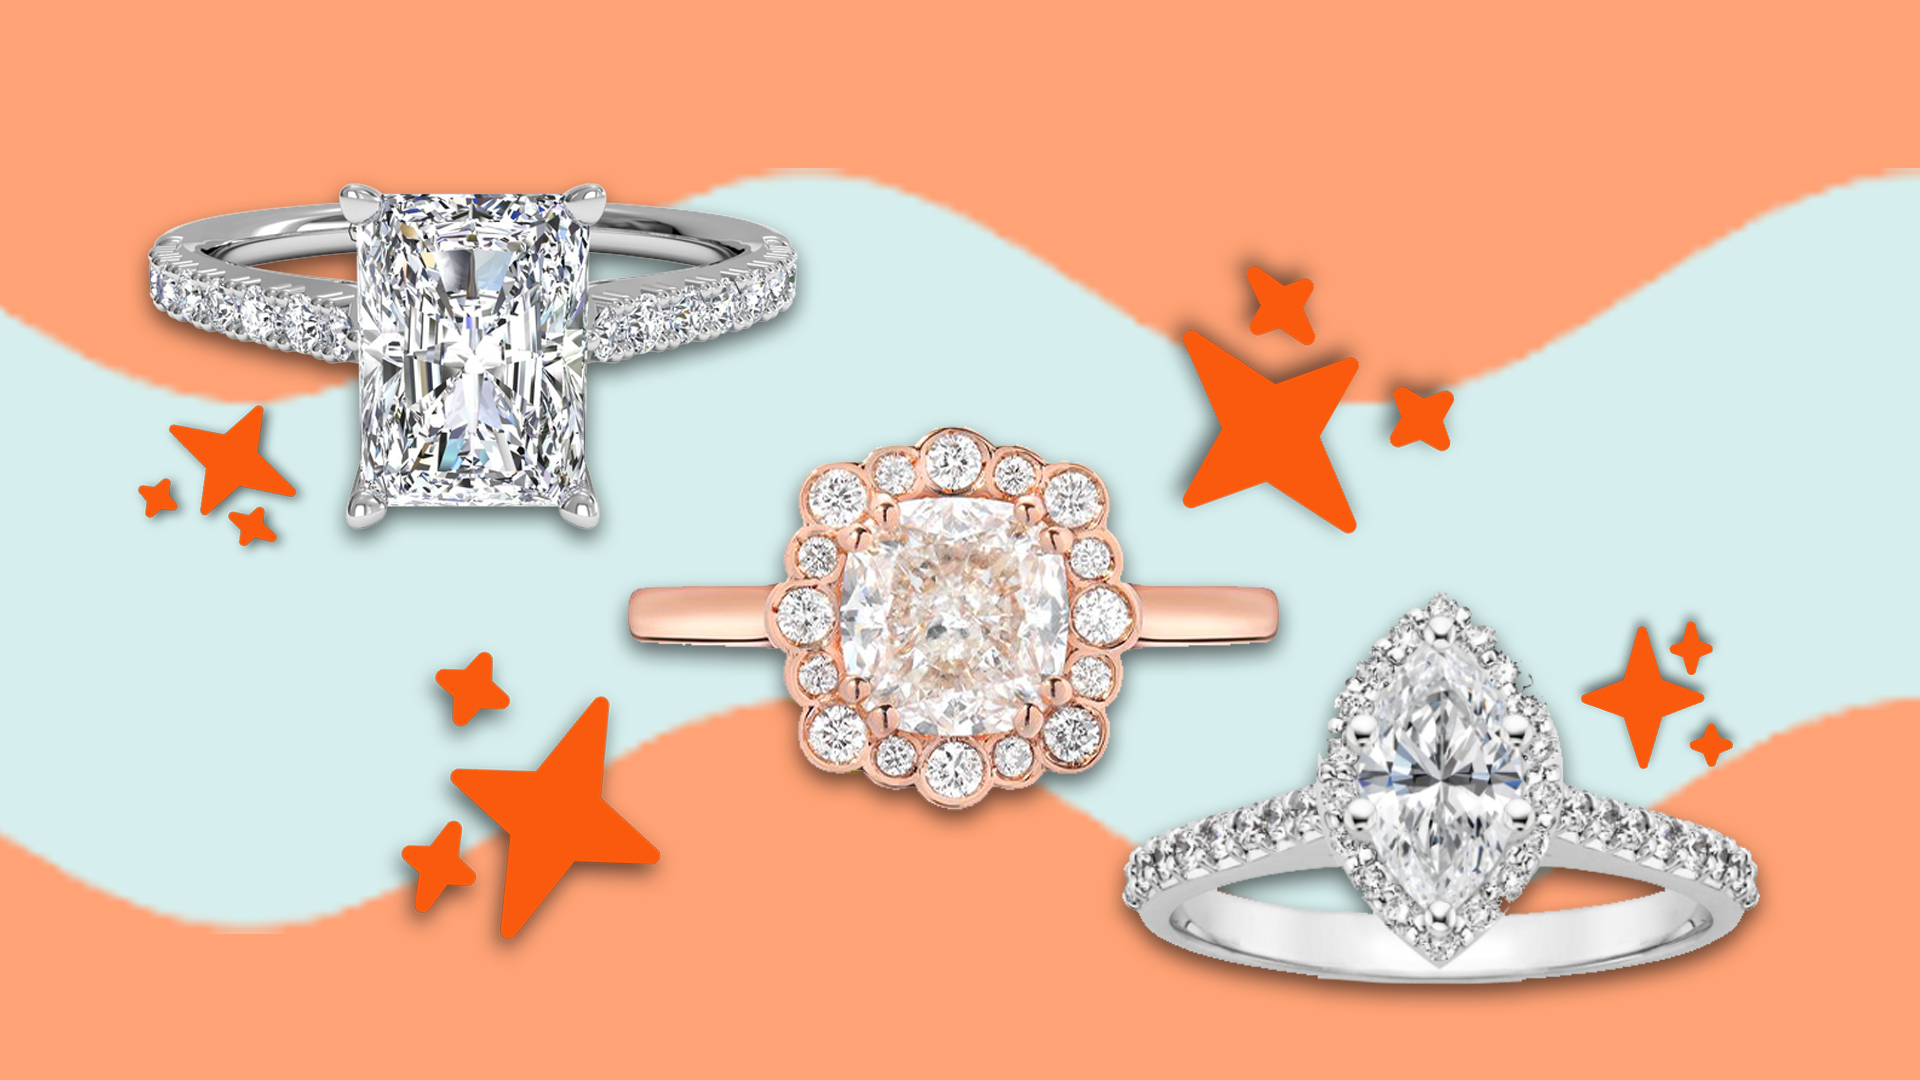 Engagement Ring 101: Trends, Inspo & How To Find A Ring You'll Love Forever